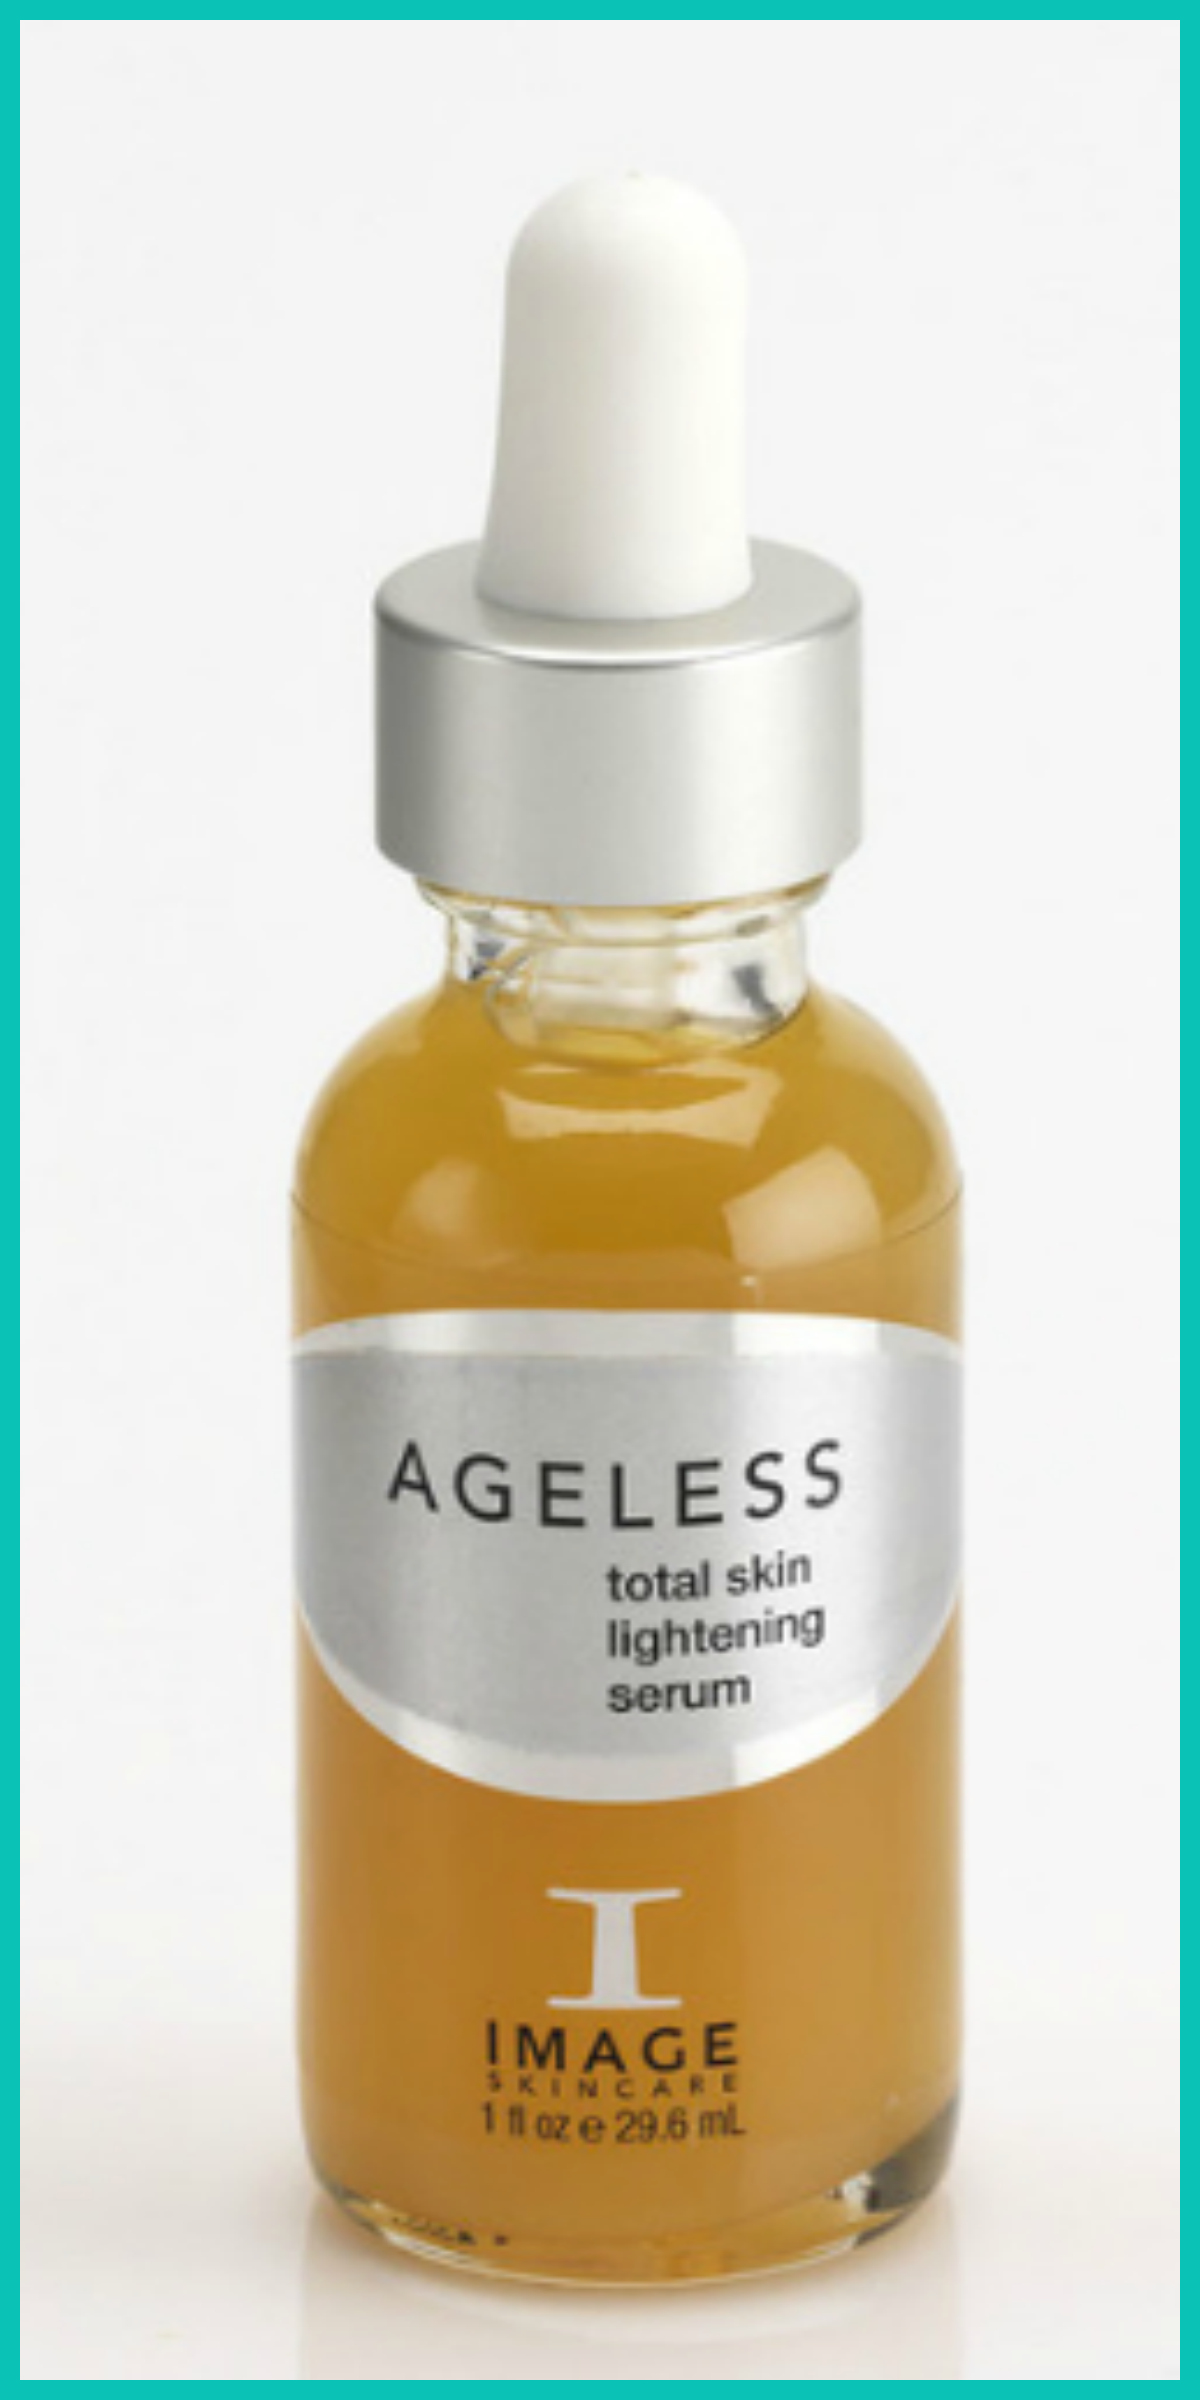 Ageless Serum How To Treat Hyperpigmentation And Dark Spots Skincare By